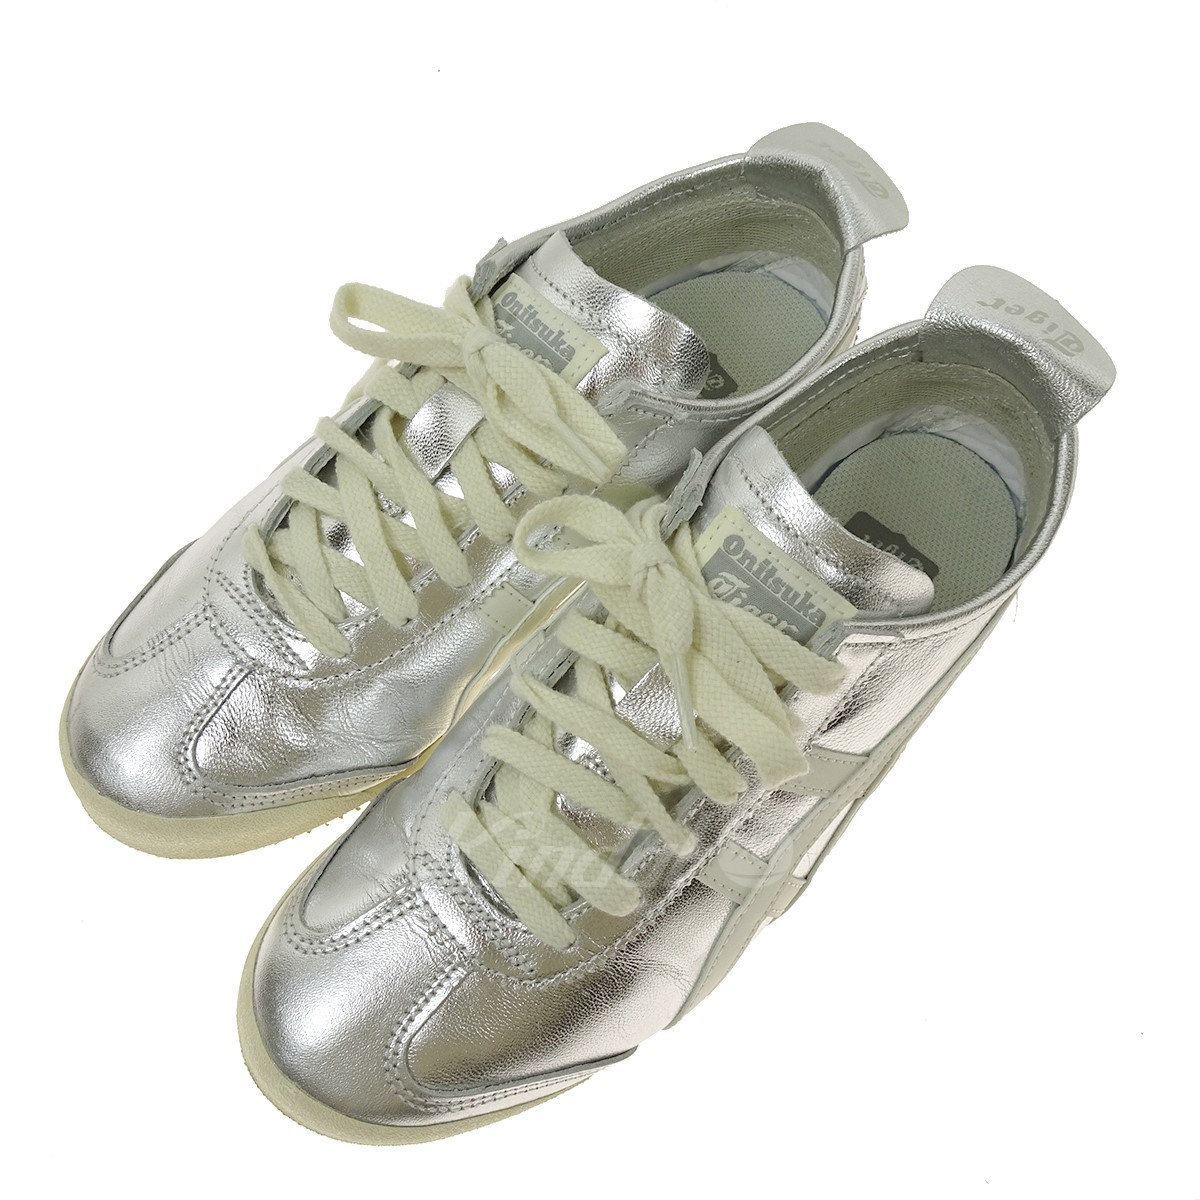 low priced 5723f bbb33 Onitsuka tiger MEXICO 66 THL7C2 low-frequency cut sneakers silver size: 24  5cm (Onitsuka tiger)